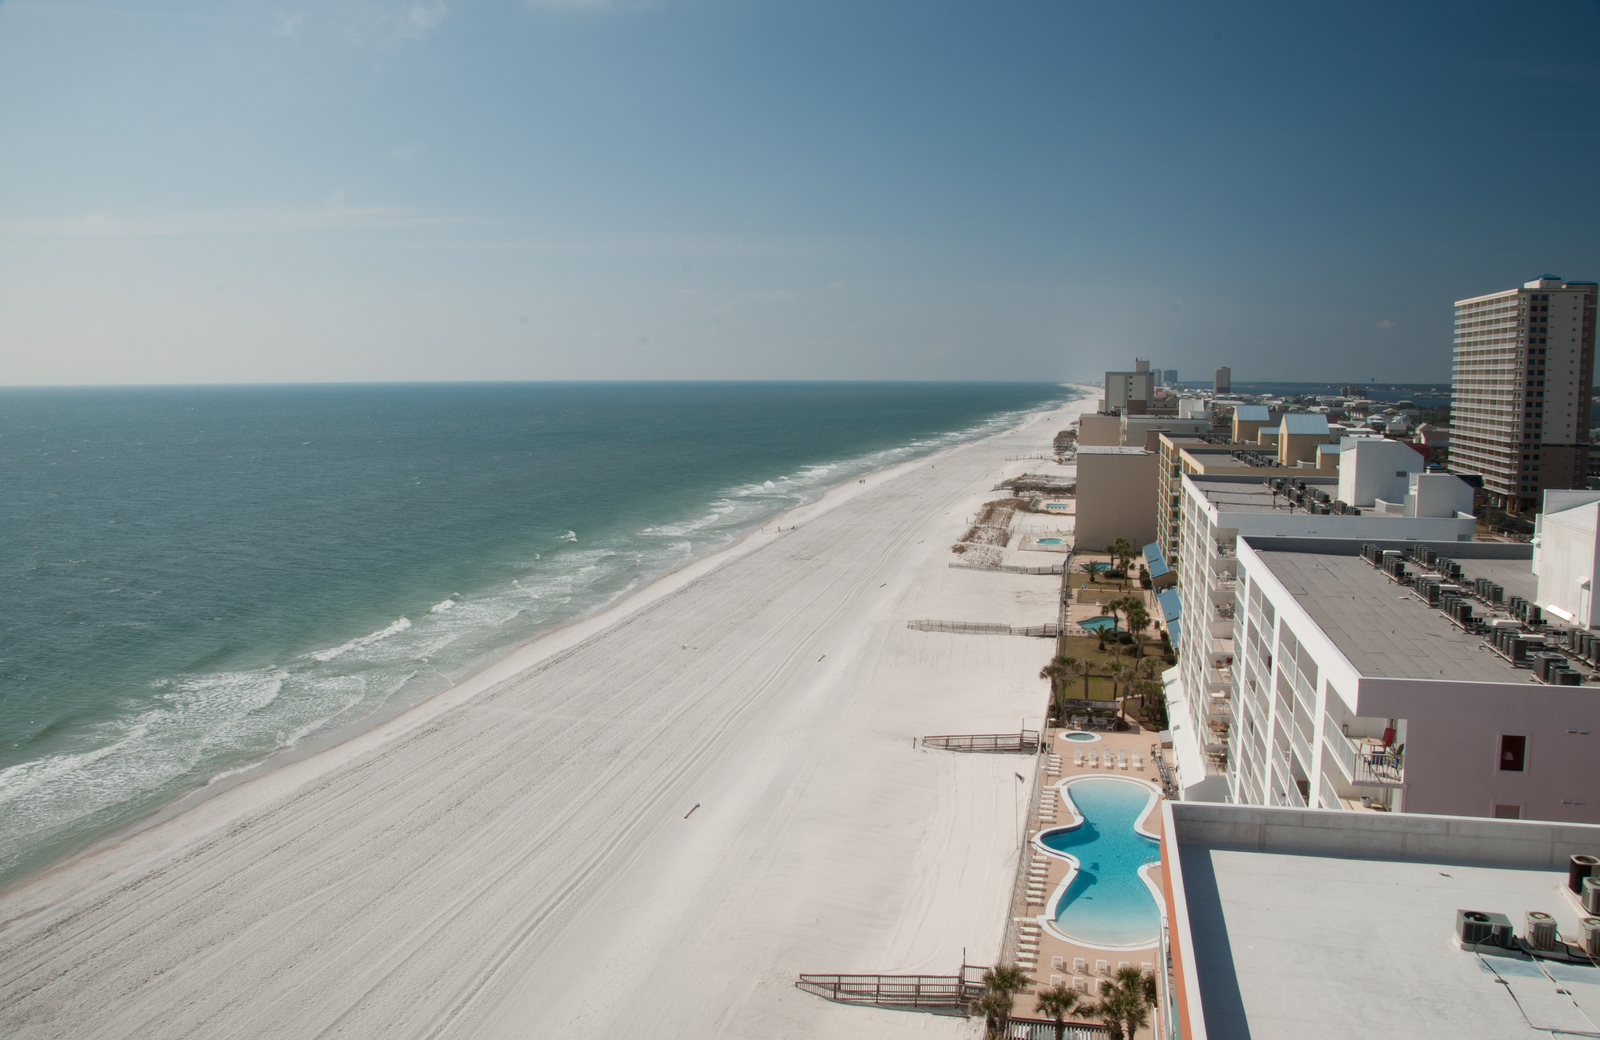 Gulf Shores, Alabama, United States